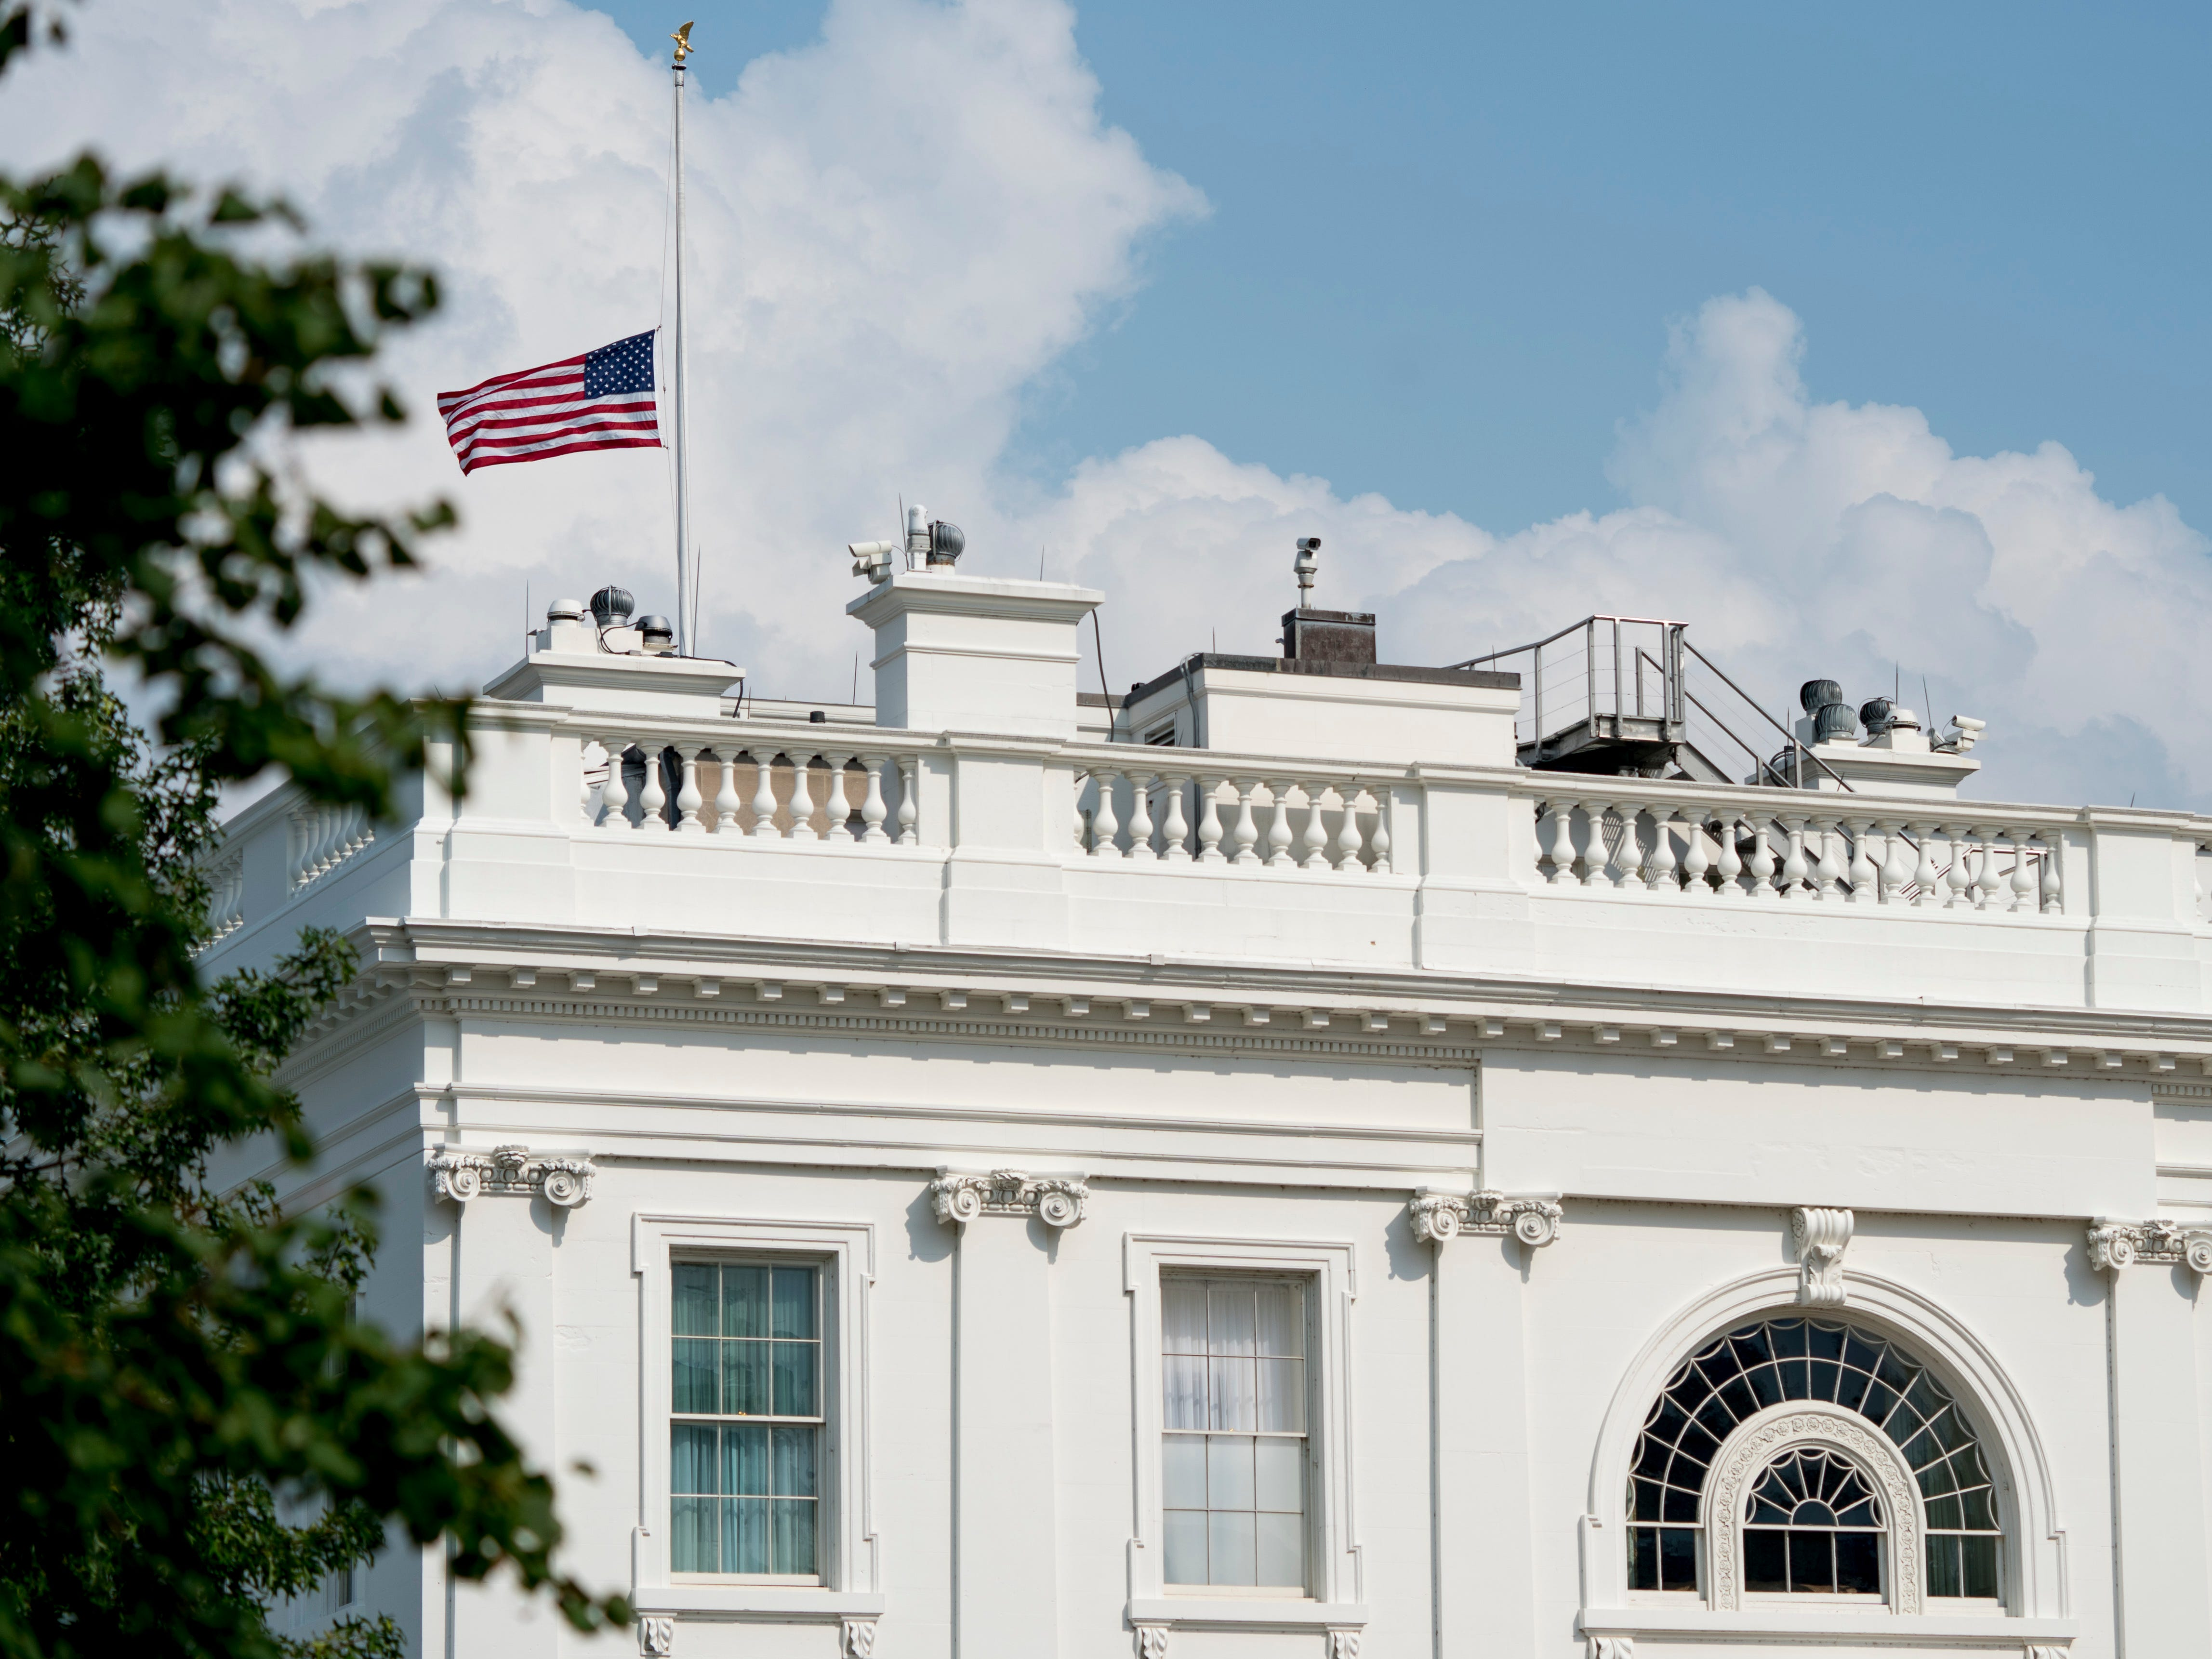 The American flag files at half-staff at the White House, Aug.. 27, 2018, in Washington. The flag atop the White House flew at half-staff over the weekend but was raised Monday and then lowered again amid criticism.